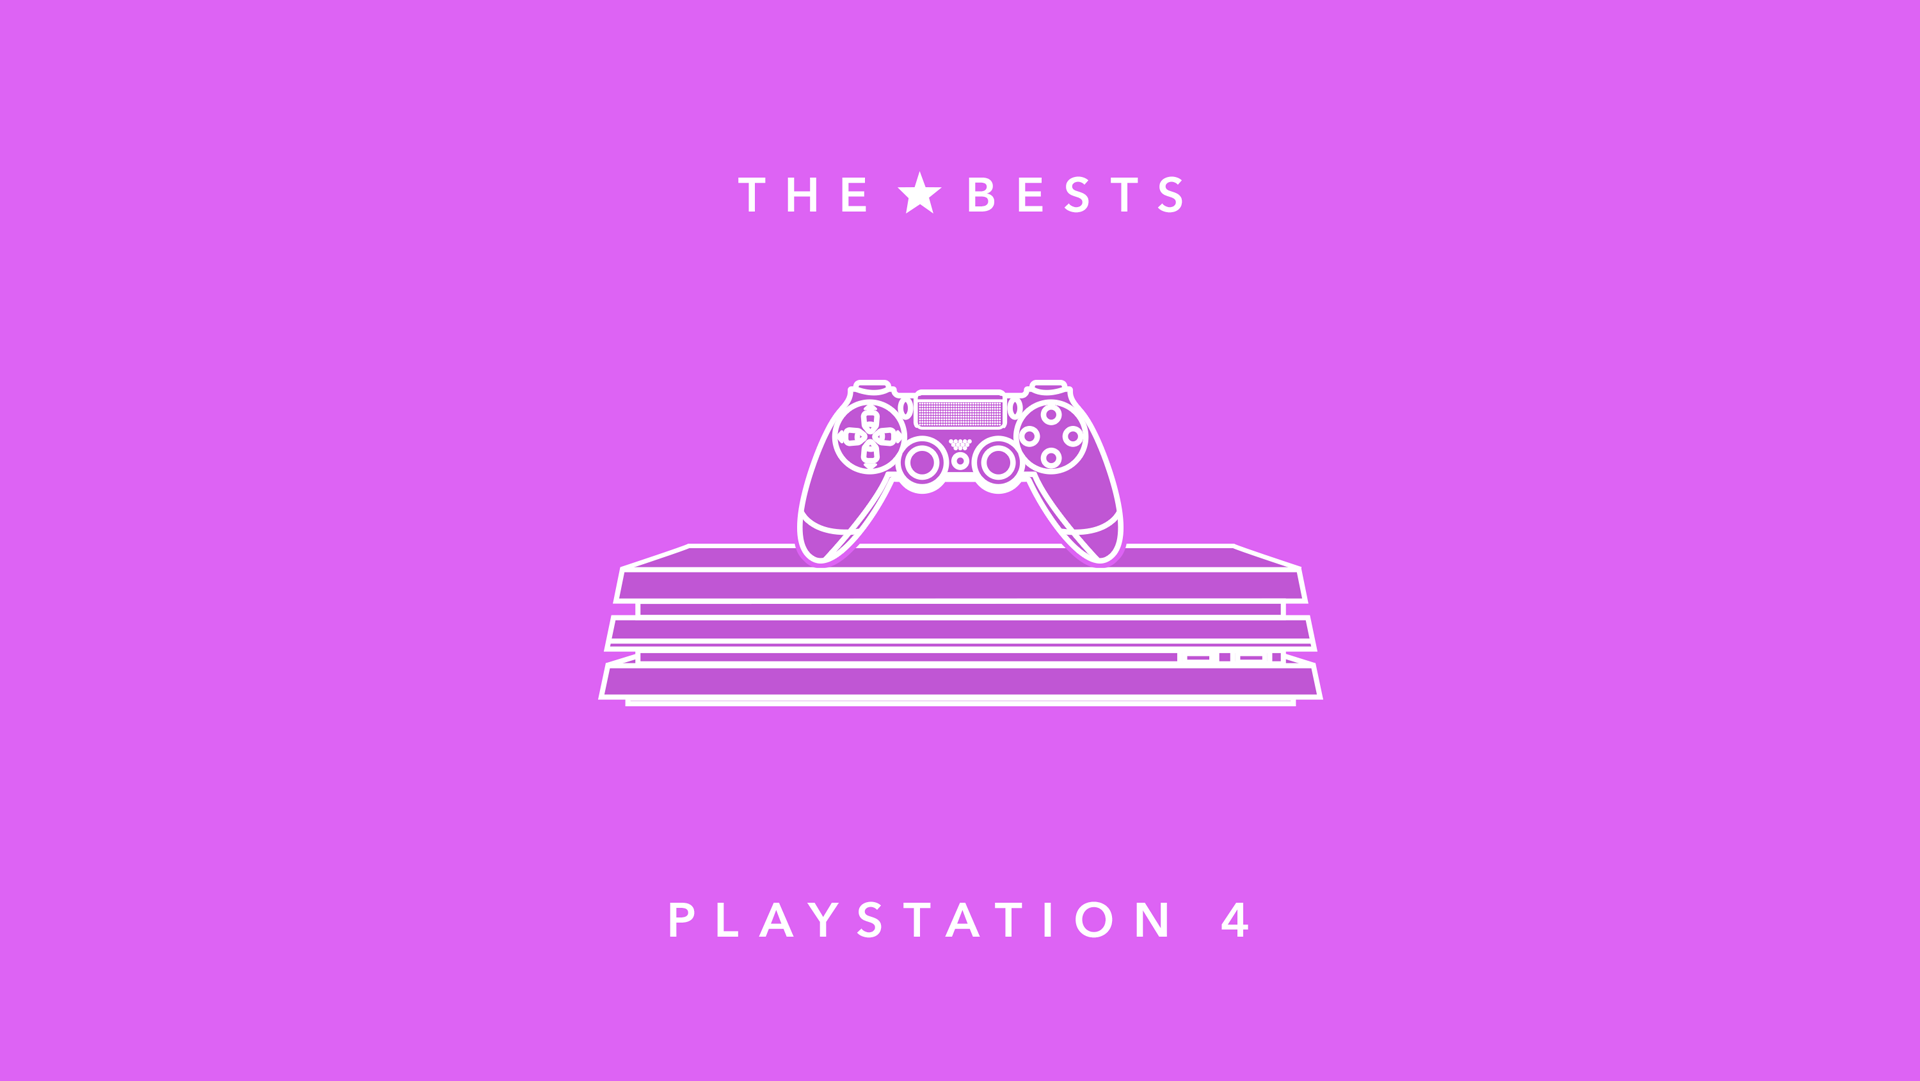 12-bests playstation-4 ps4 sony the-bests